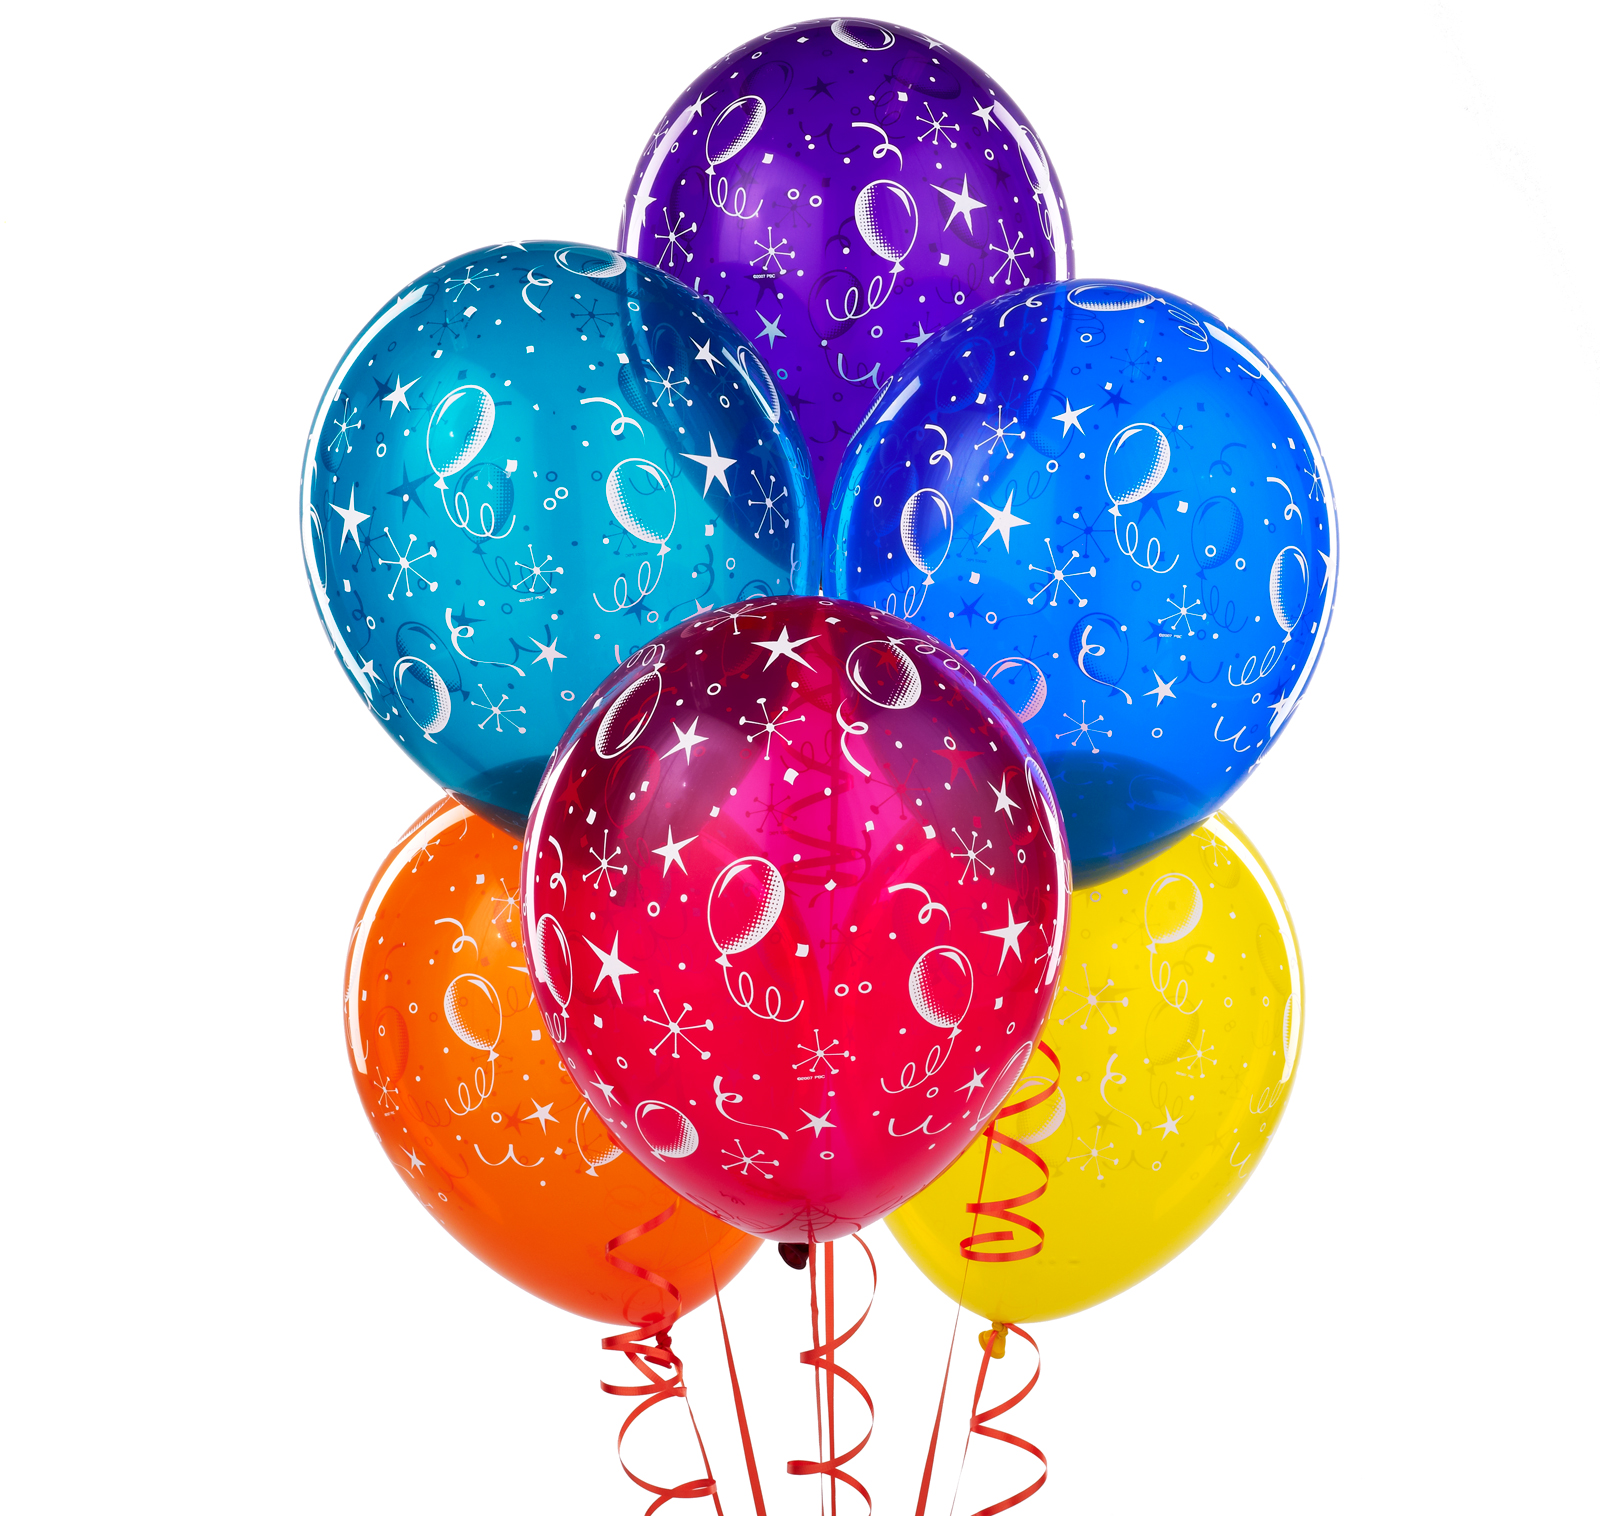 Ballons Balloons Party Favors Ideas